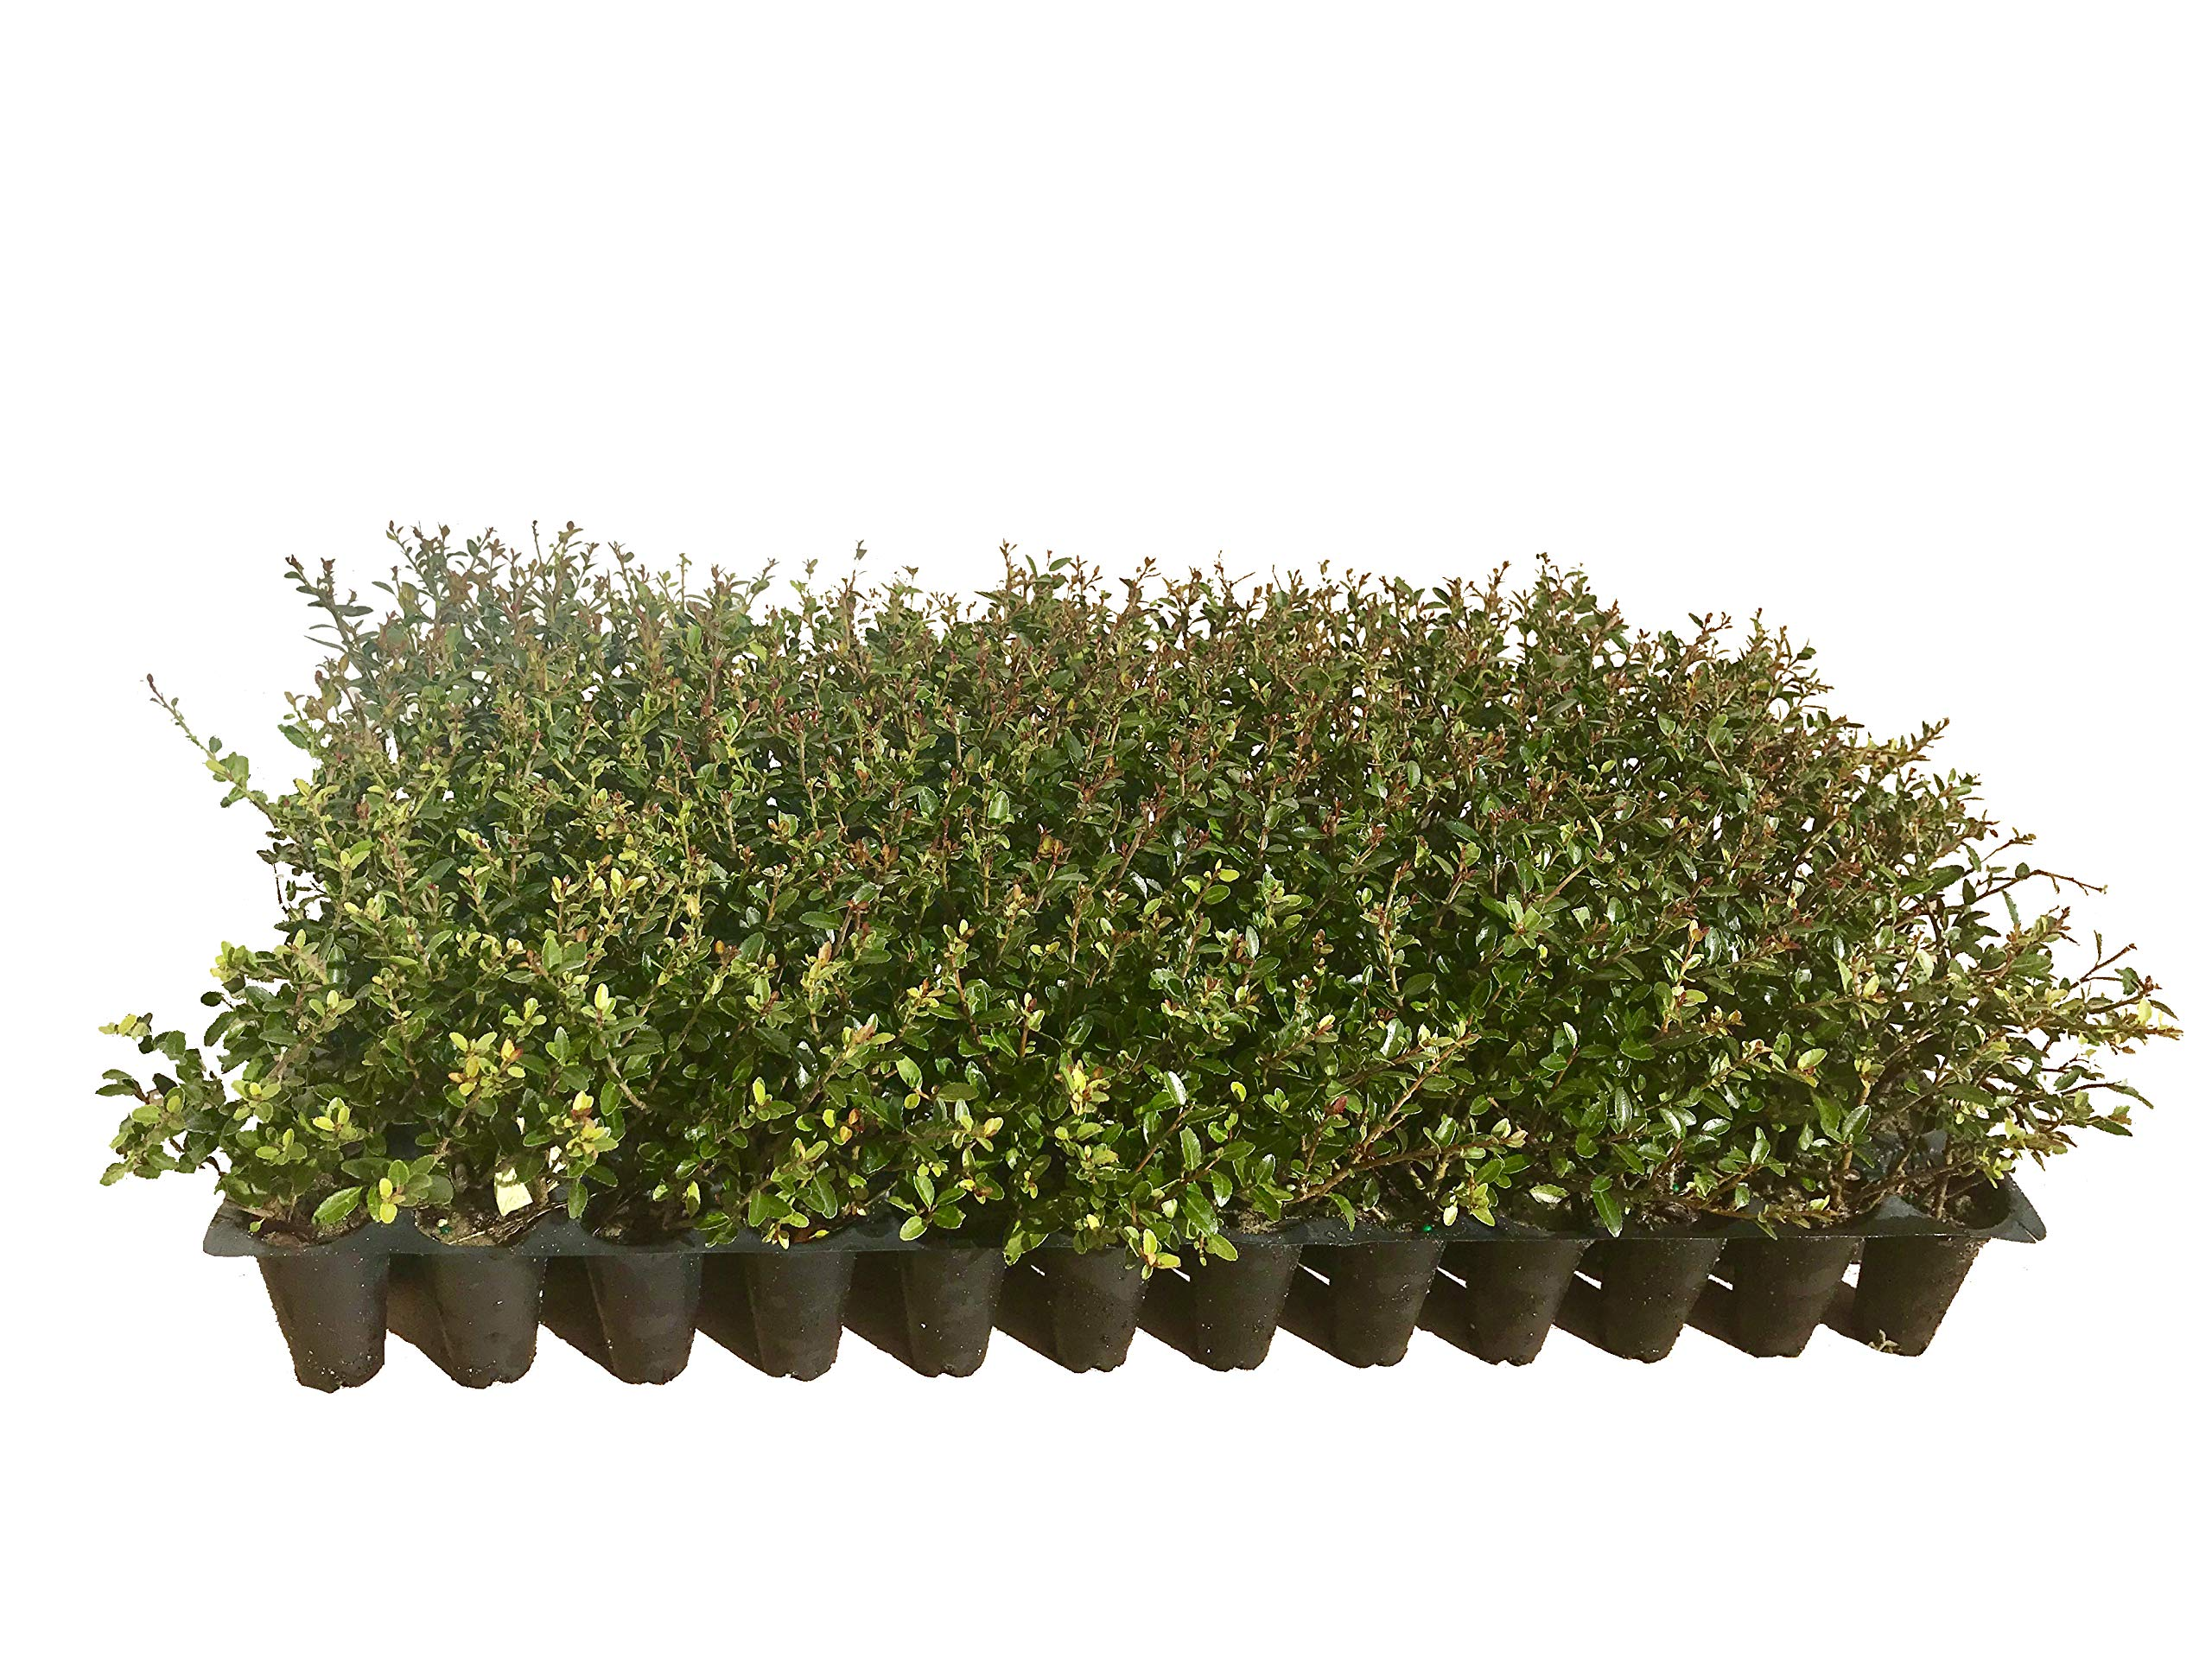 Ilex Schilling Stokes Dwarf Yaupon Holly Vomitoria Qty 72 Fully Rooted Live Plants Evergreen Hedge